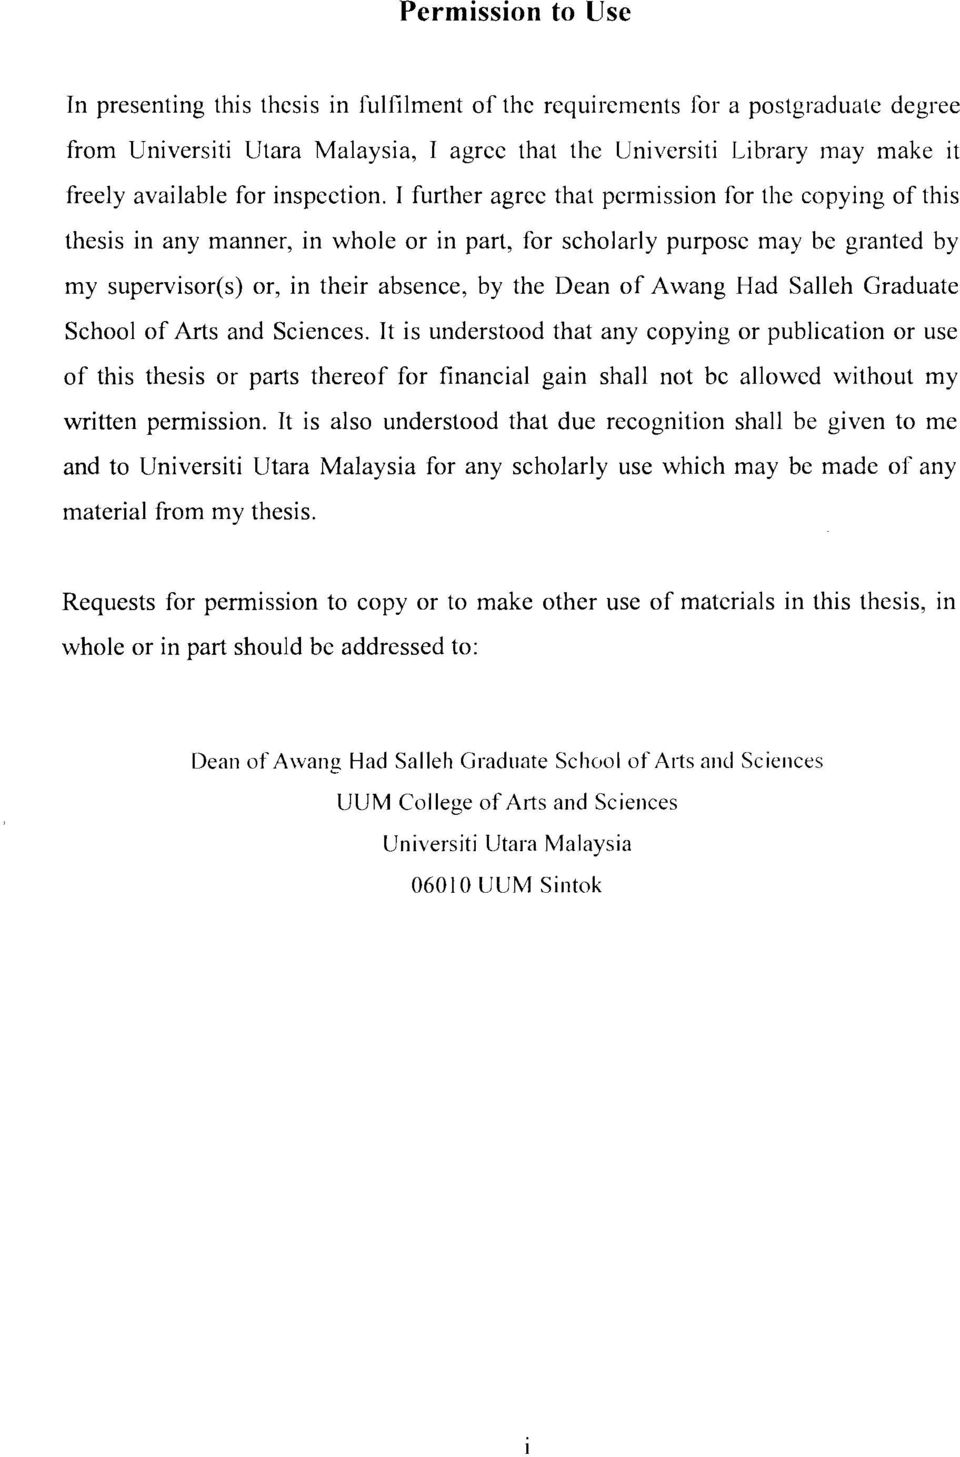 I further agree that permission for t11e copying of this thesis in any manner, in whole or in part, for scholarly purpose may be granted by my supervisor(s) or, in their absence, by the Dean of Awang